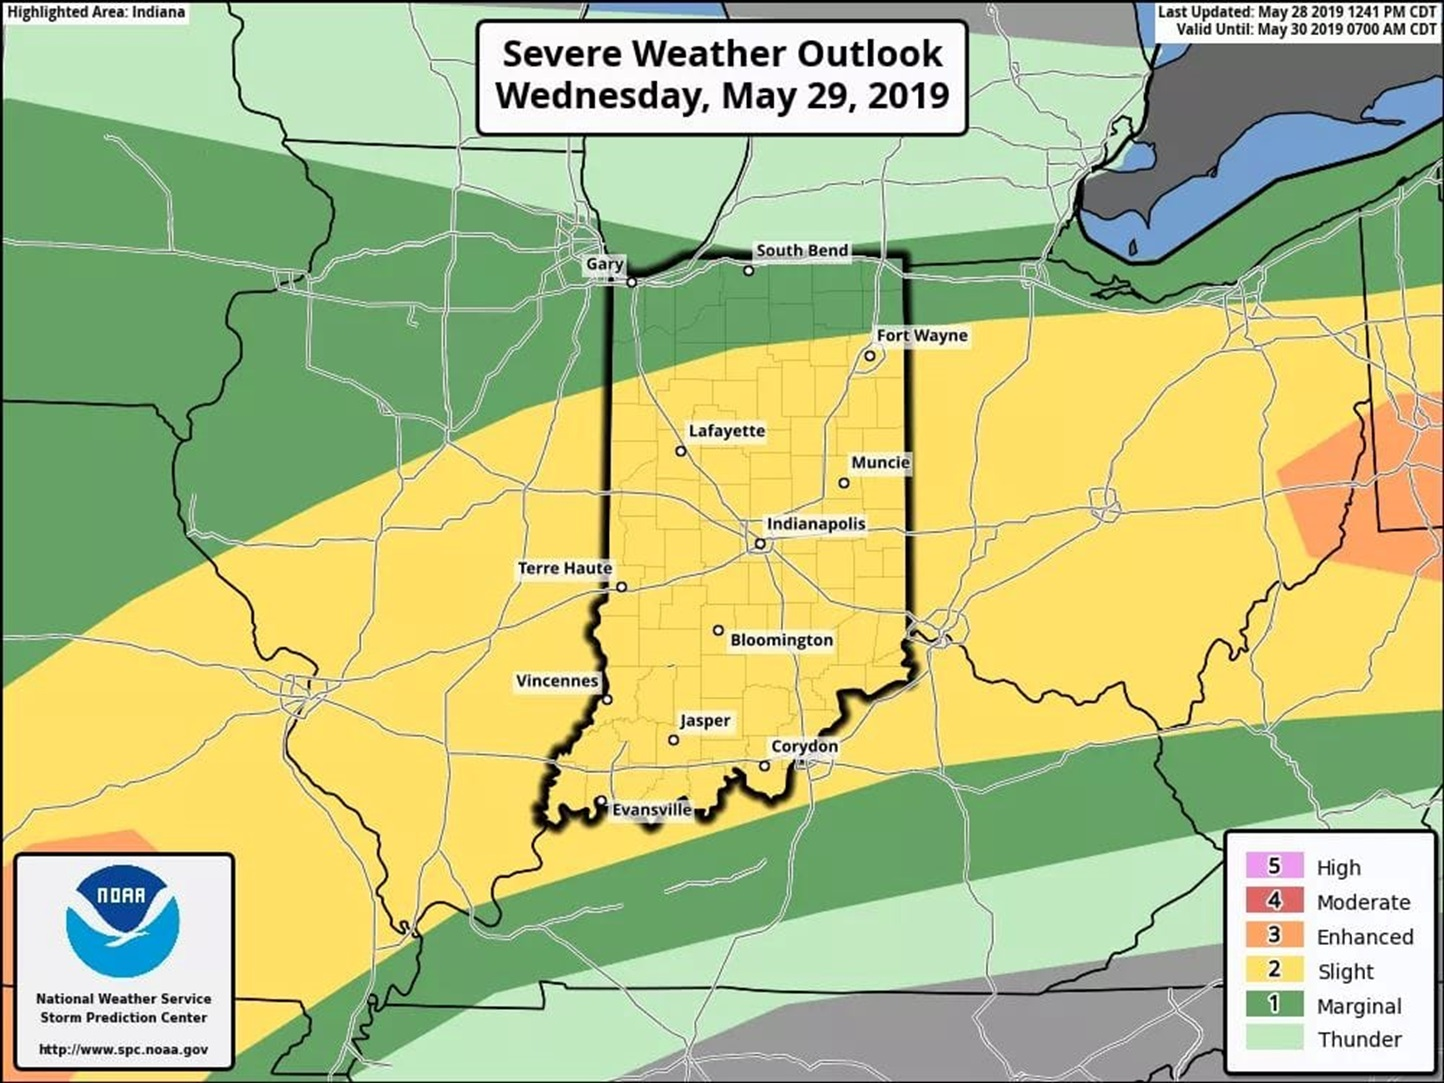 ALERT:  Be Aware of Severe Weather Threat Wednesday, Slight Risk Issued by Storm Prediction Center